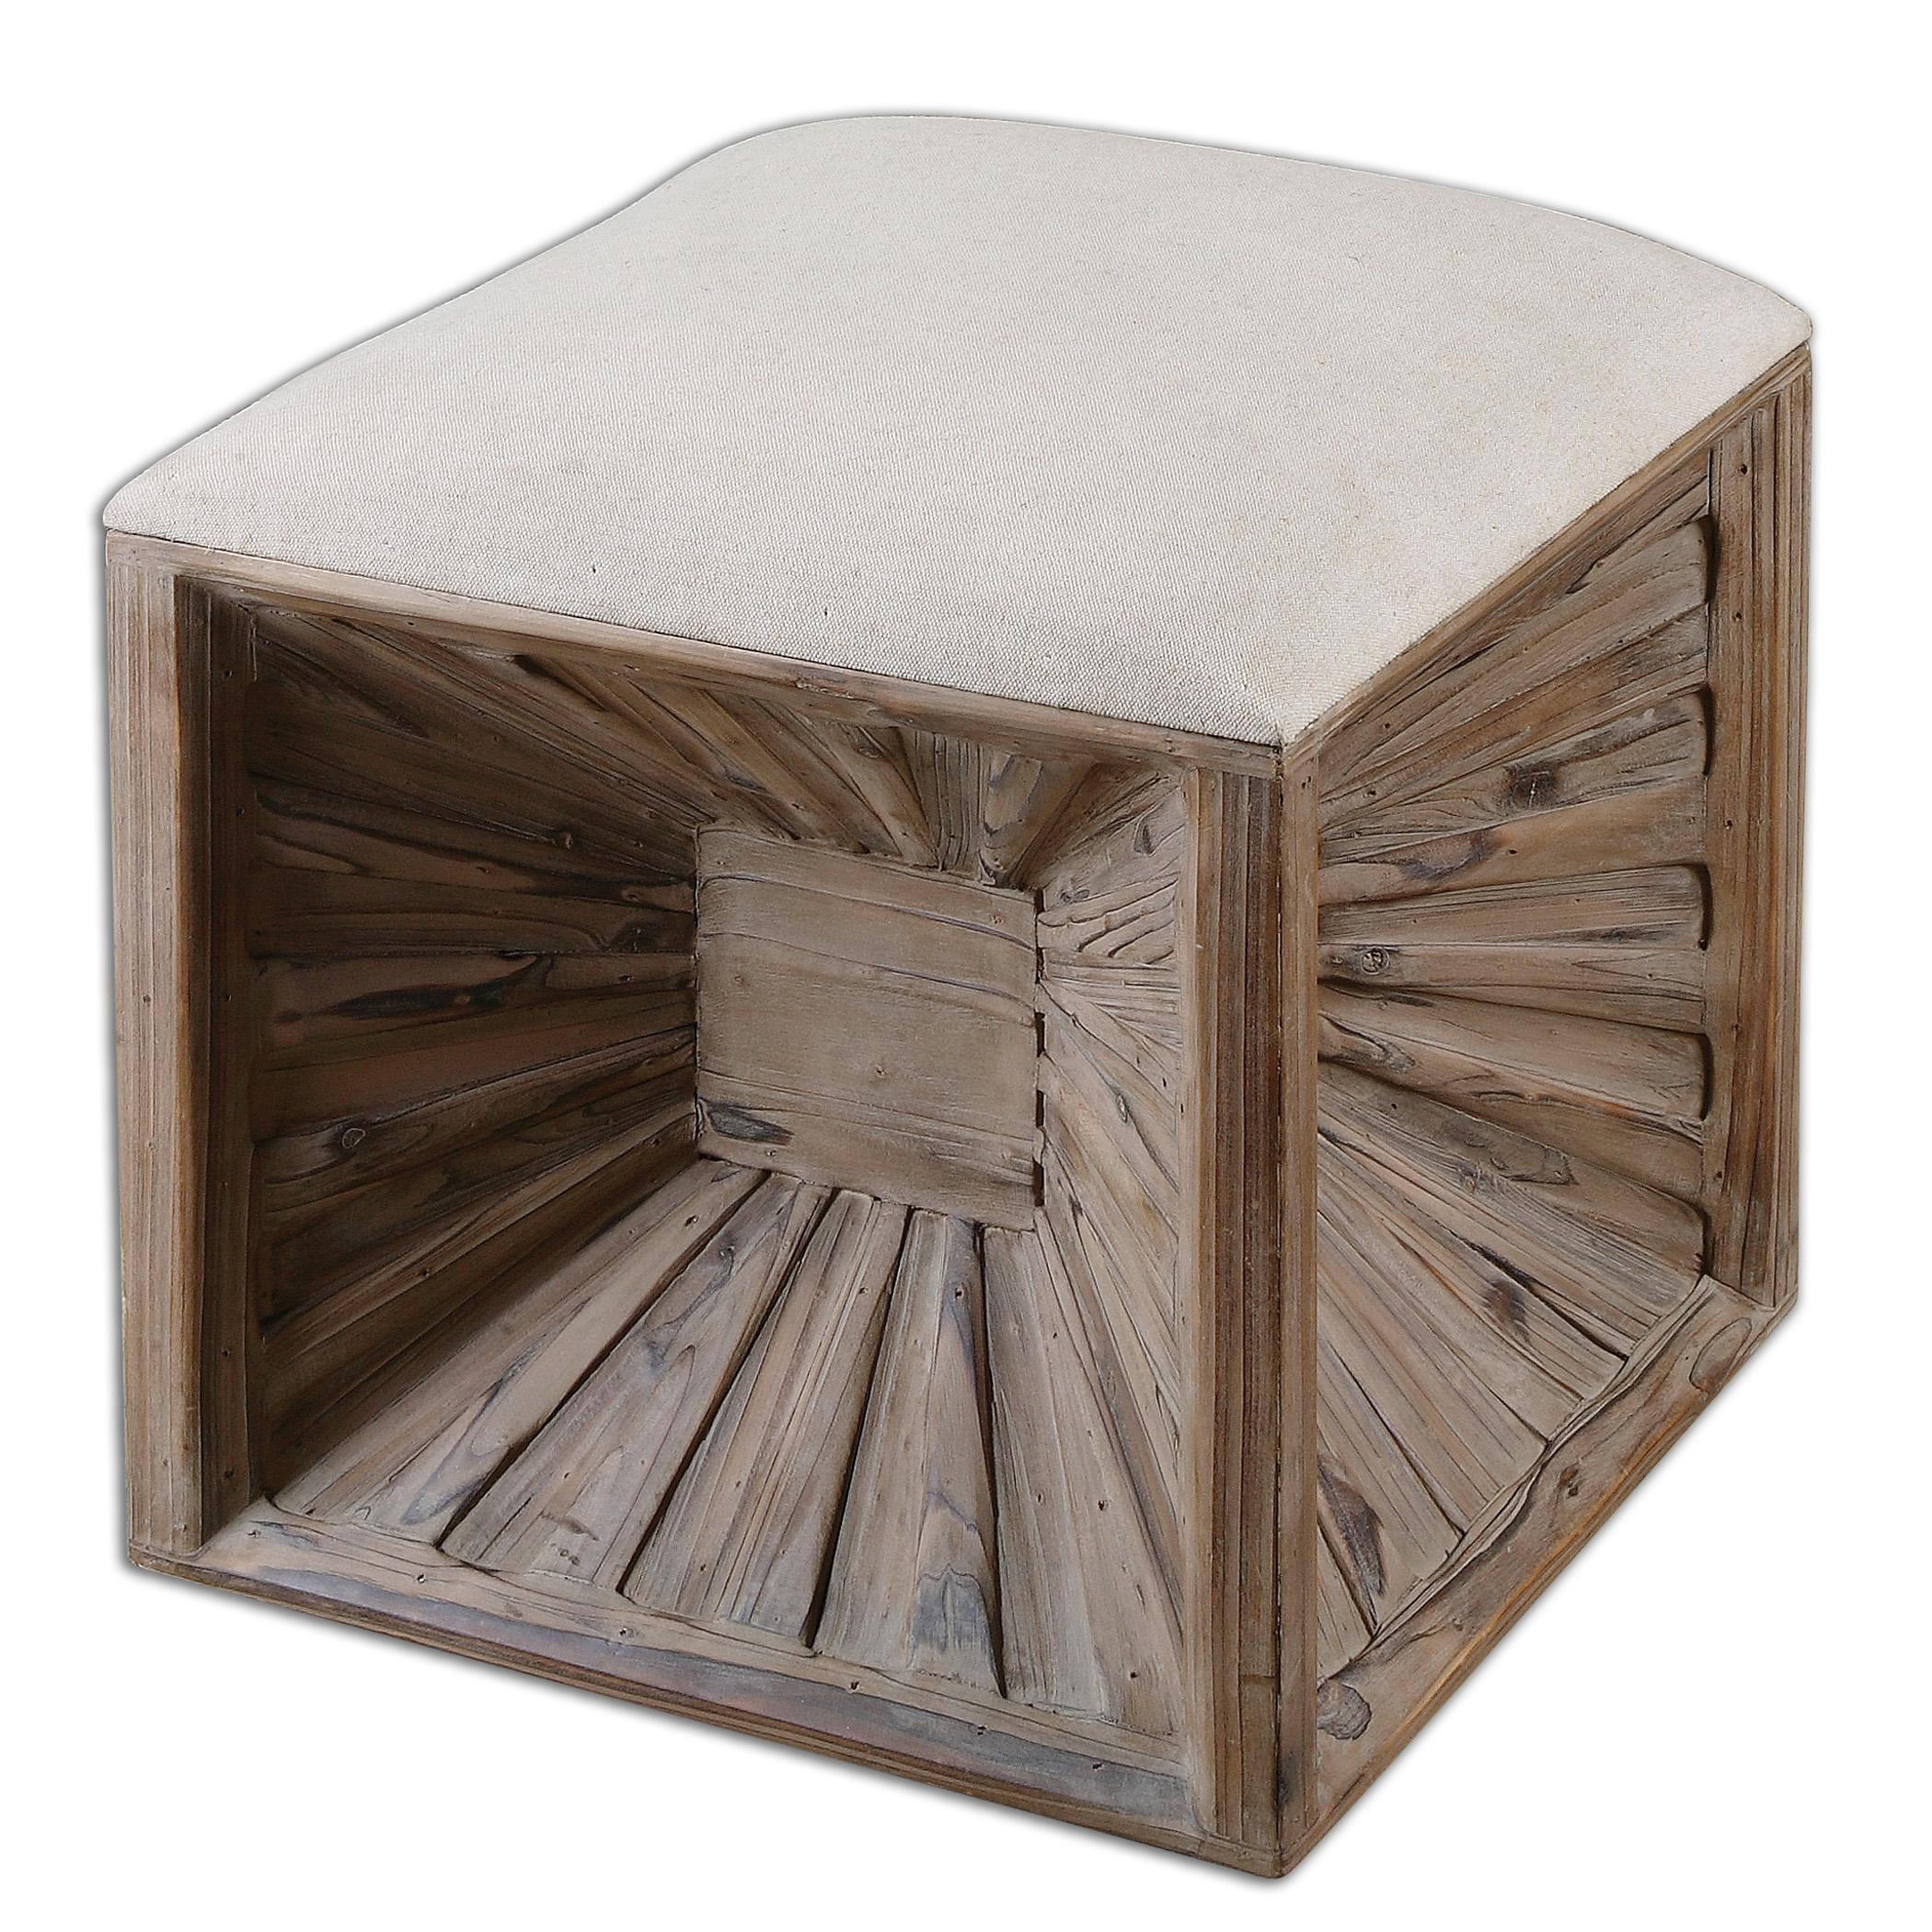 Uttermost Accent Furniture Jia Wooden Ottoman - Item Number: 23131